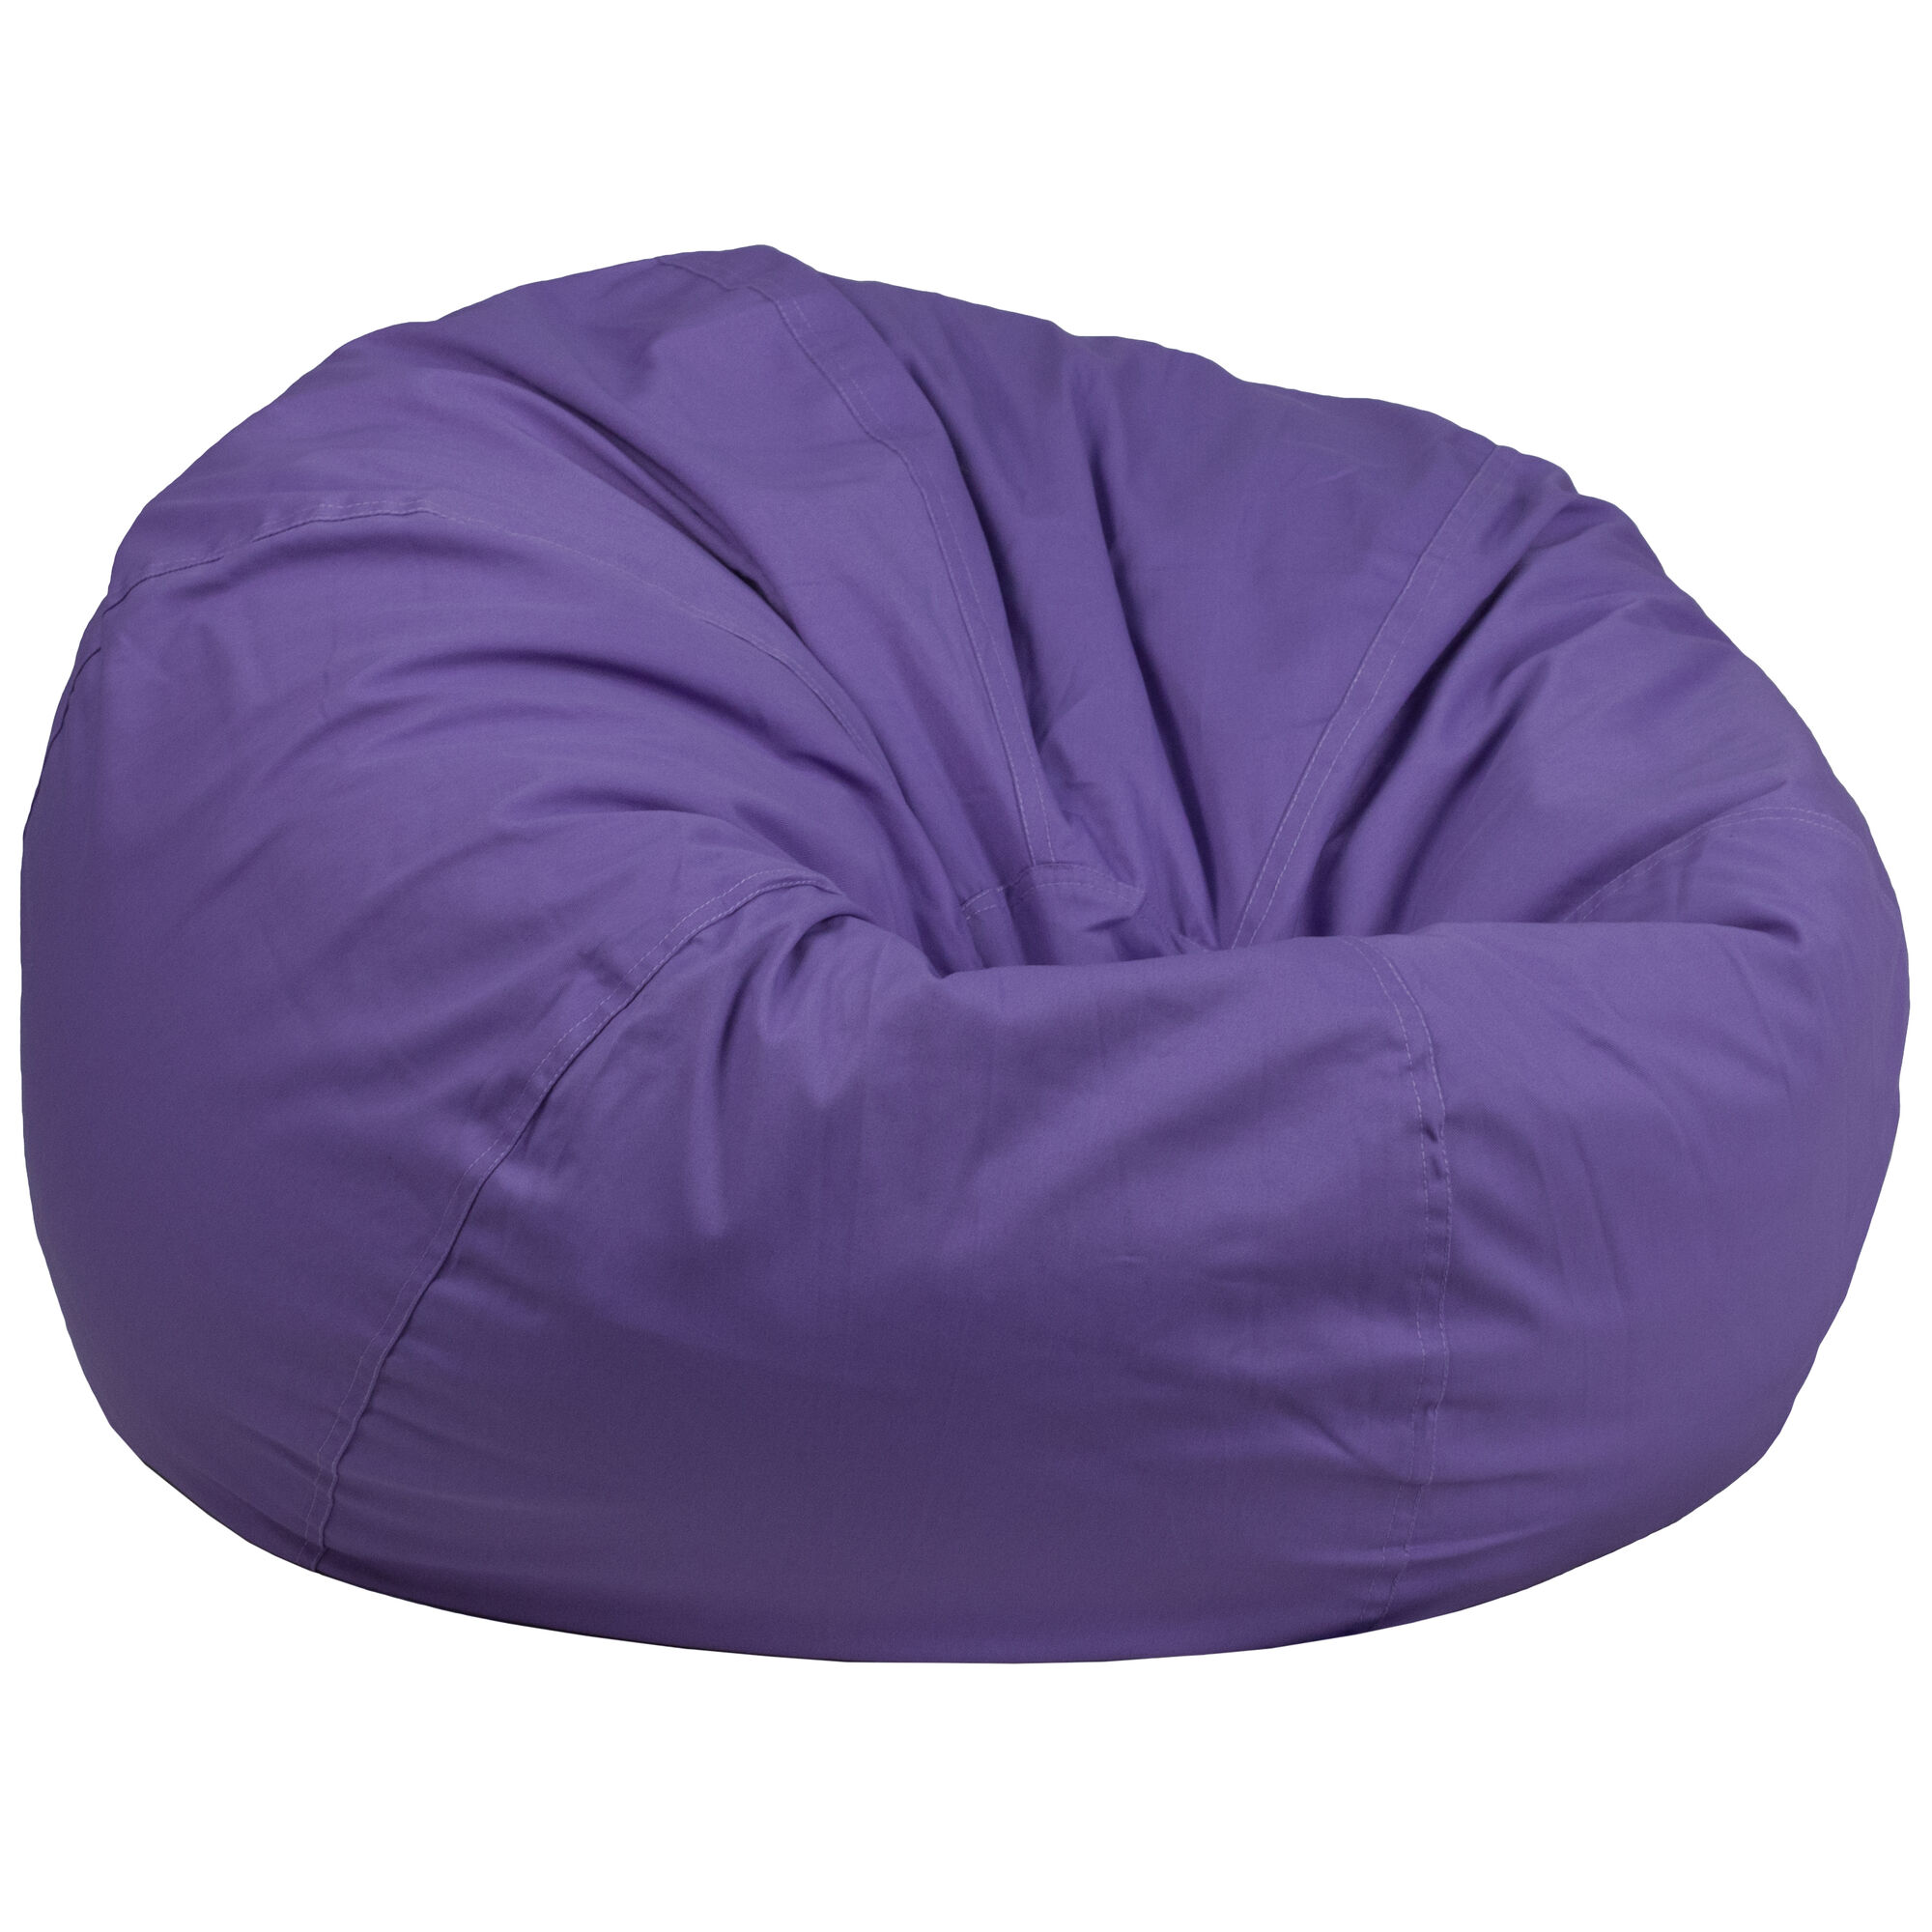 Superb Oversized Solid Purple Bean Bag Chair For Kids And Adults Dailytribune Chair Design For Home Dailytribuneorg